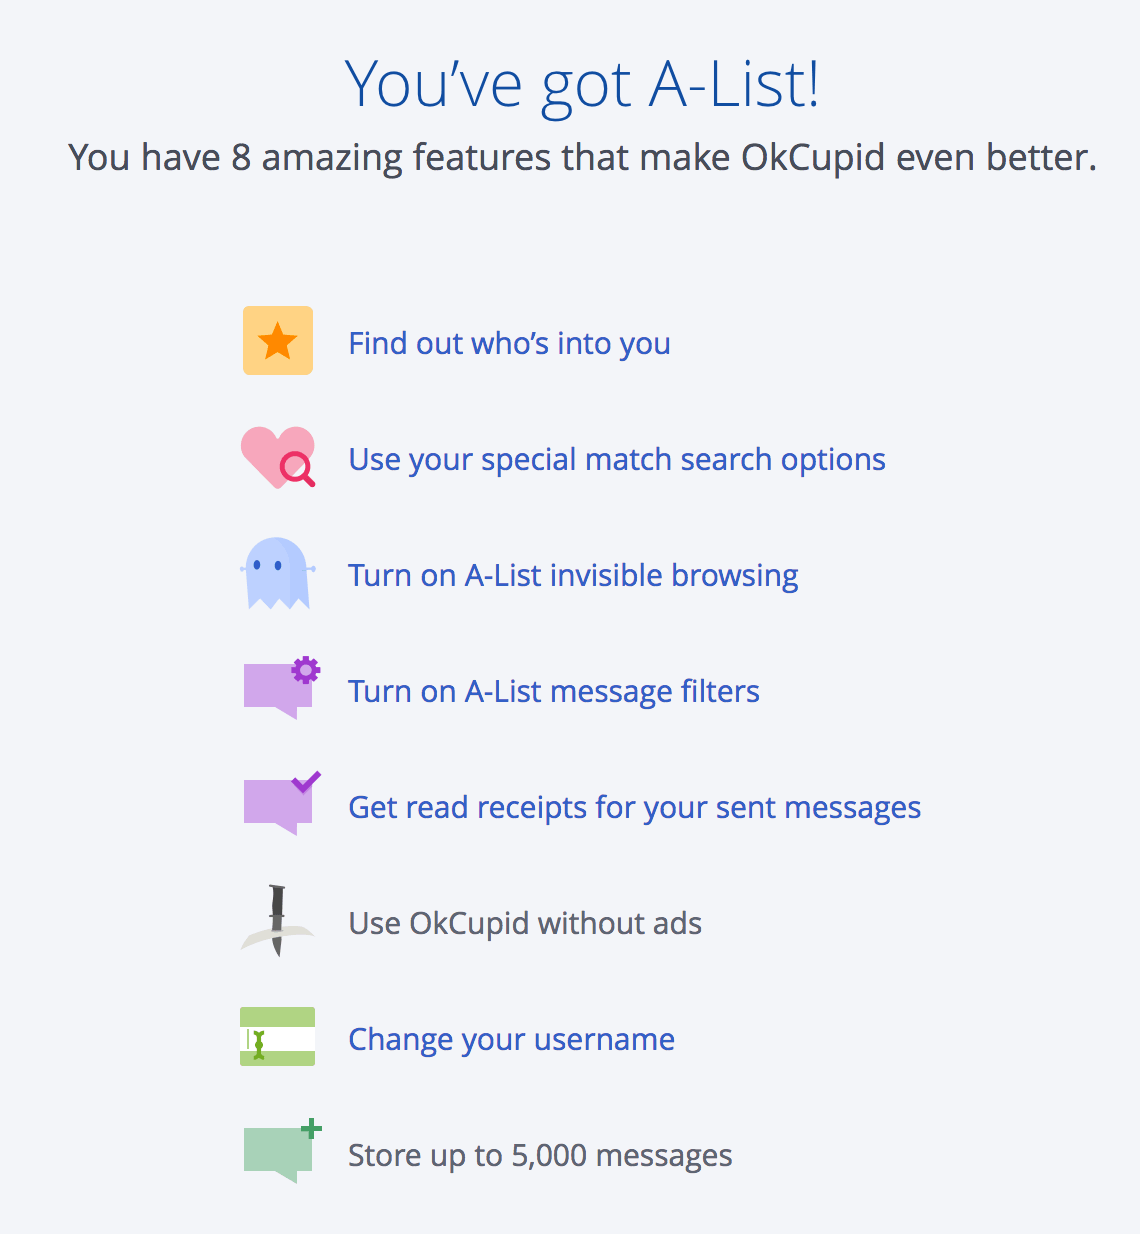 Okcupid a list features